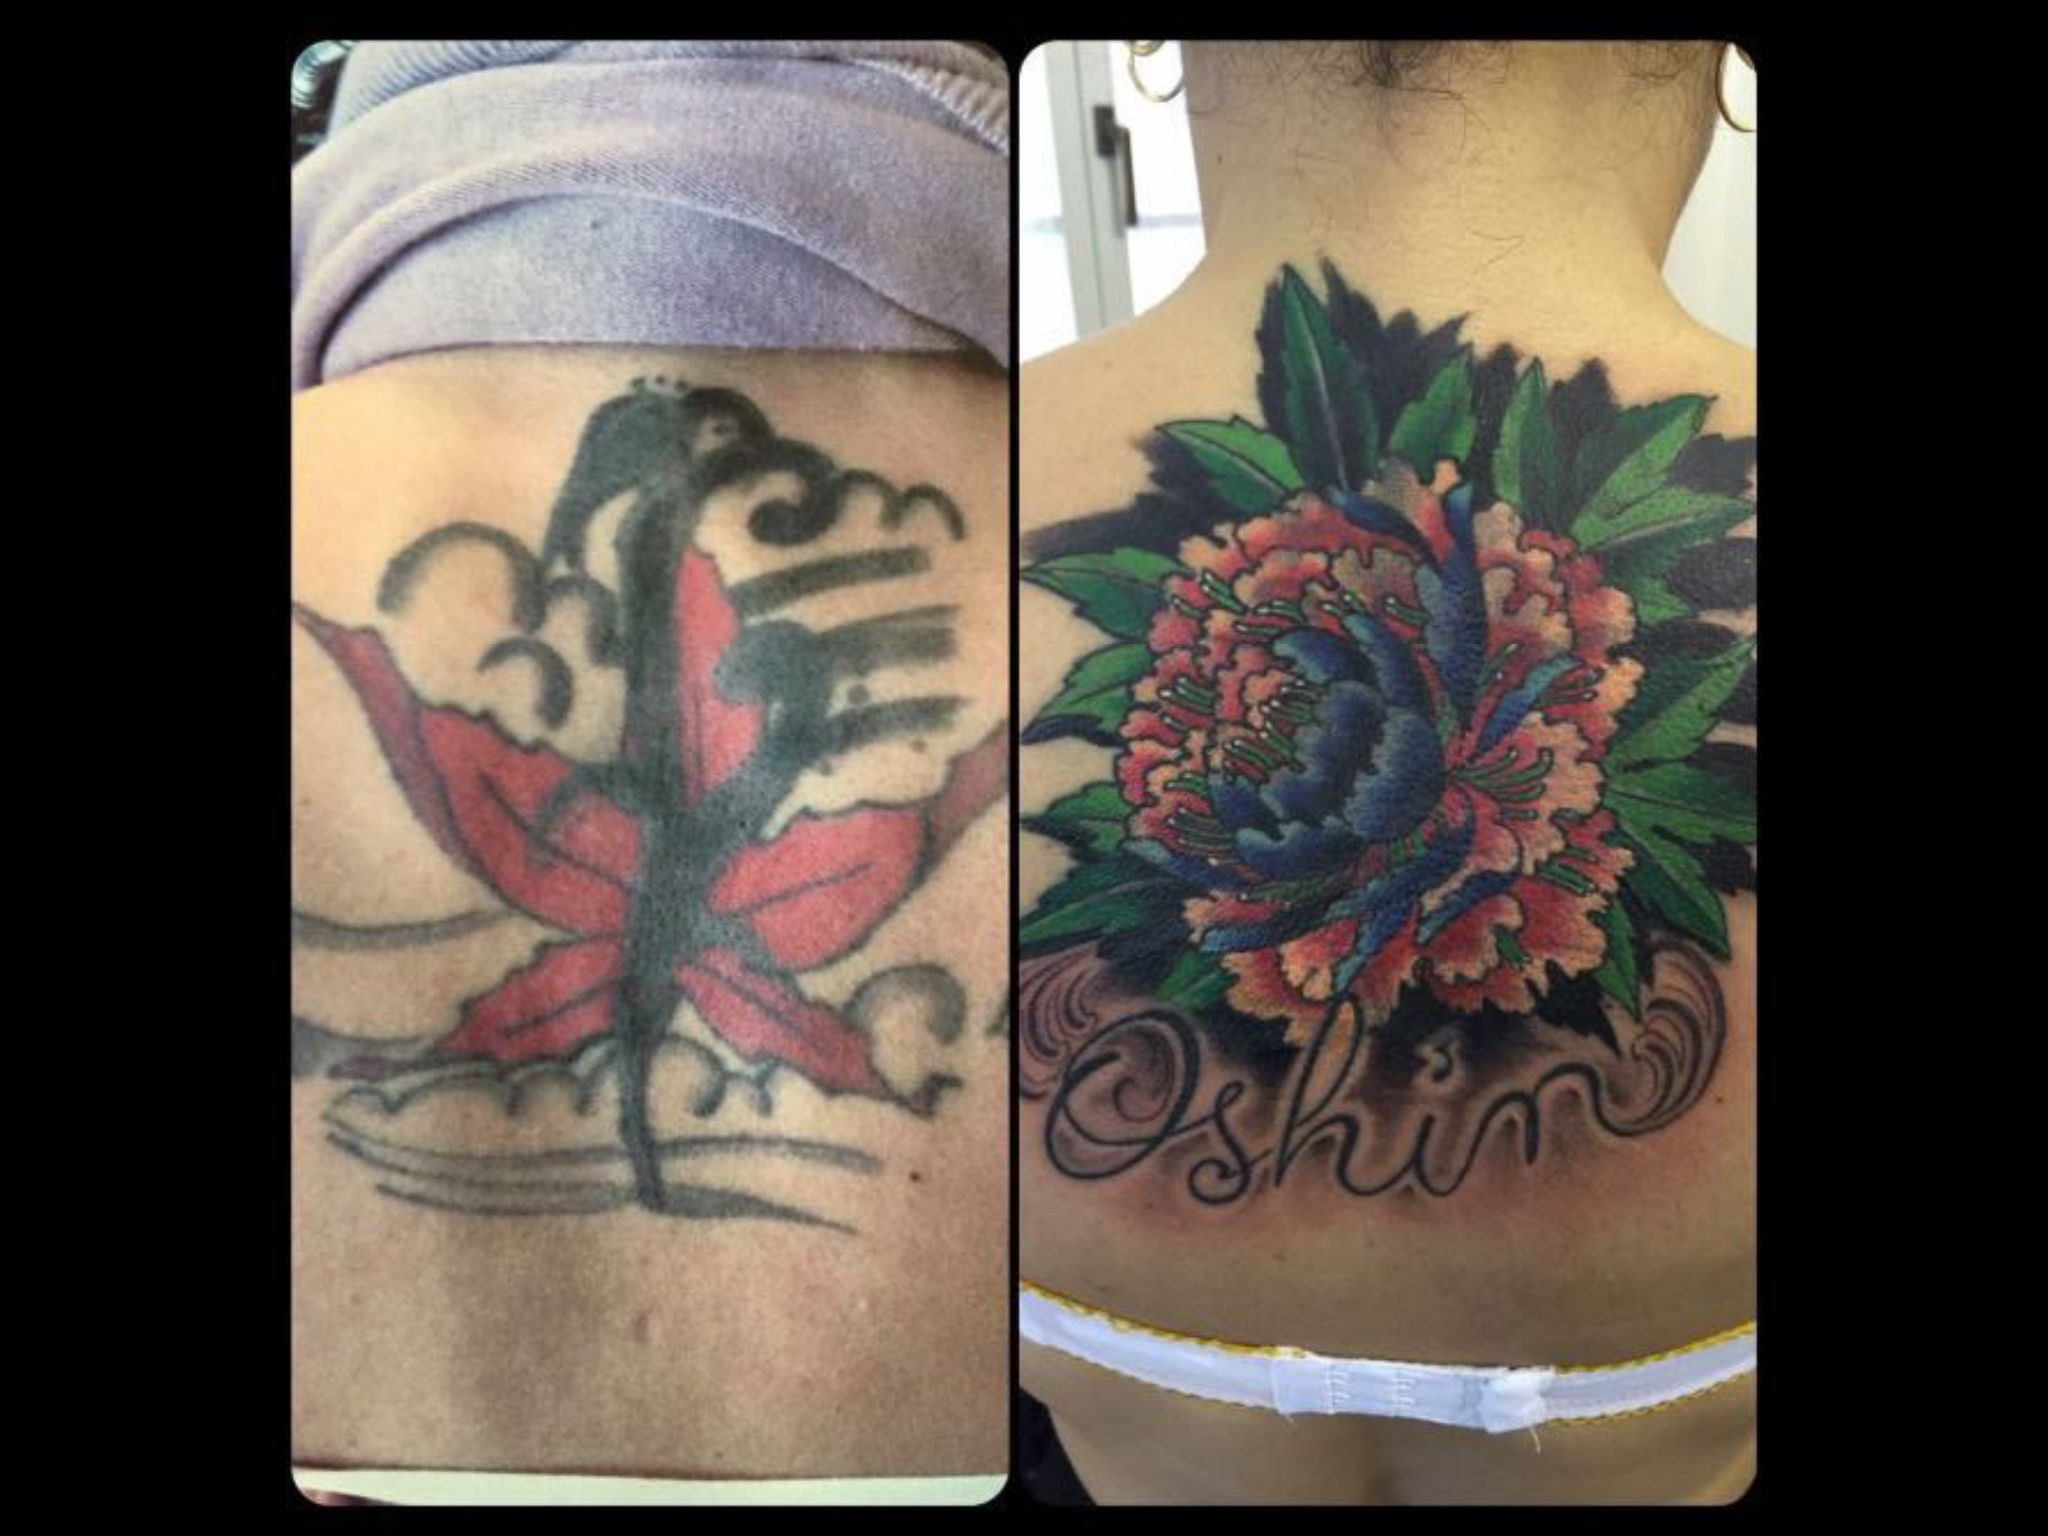 PMP Tattoo Parlour cover-up  by Ylenia #tattoos #tattooink #ink #tattooboys #tattoogirls #love #lovetattoo #tattoolove #tattooed  #cool #amezing #special #colors #flowerstagram #multycolor #tattooboy #tattoogirl #loveink #back #hat #life #flowers #tätowierung #flowerstattoo #cool #free #happy #love #instacool #instagood #picoftheday #coverup @pmp_tattoo_parlour